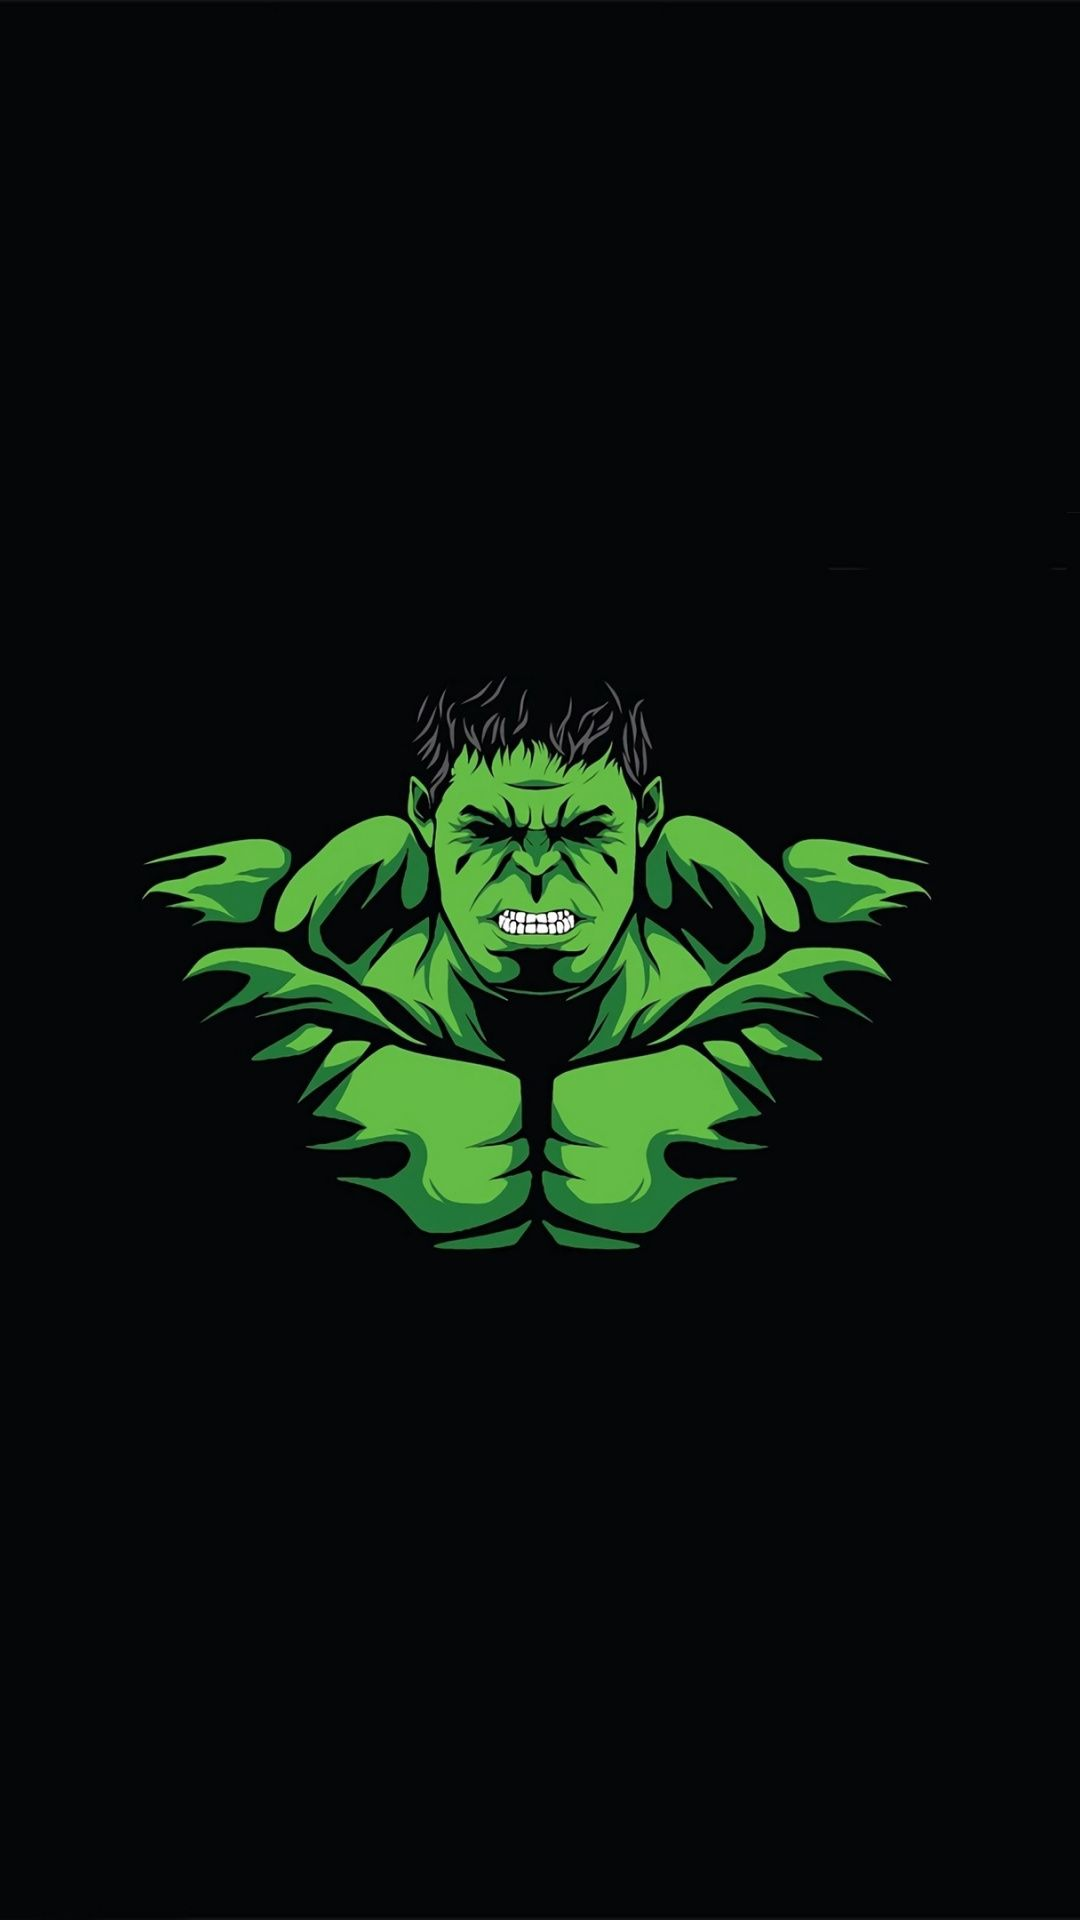 Download 1080x1920 Wallpaper Hulk Angry Green Man Minimal Samsung Galaxy S4 S5 Note Sony Xperia Z Z1 Z2 In 2020 Cartoon Wallpaper Hd Hulk Art Cartoon Wallpaper